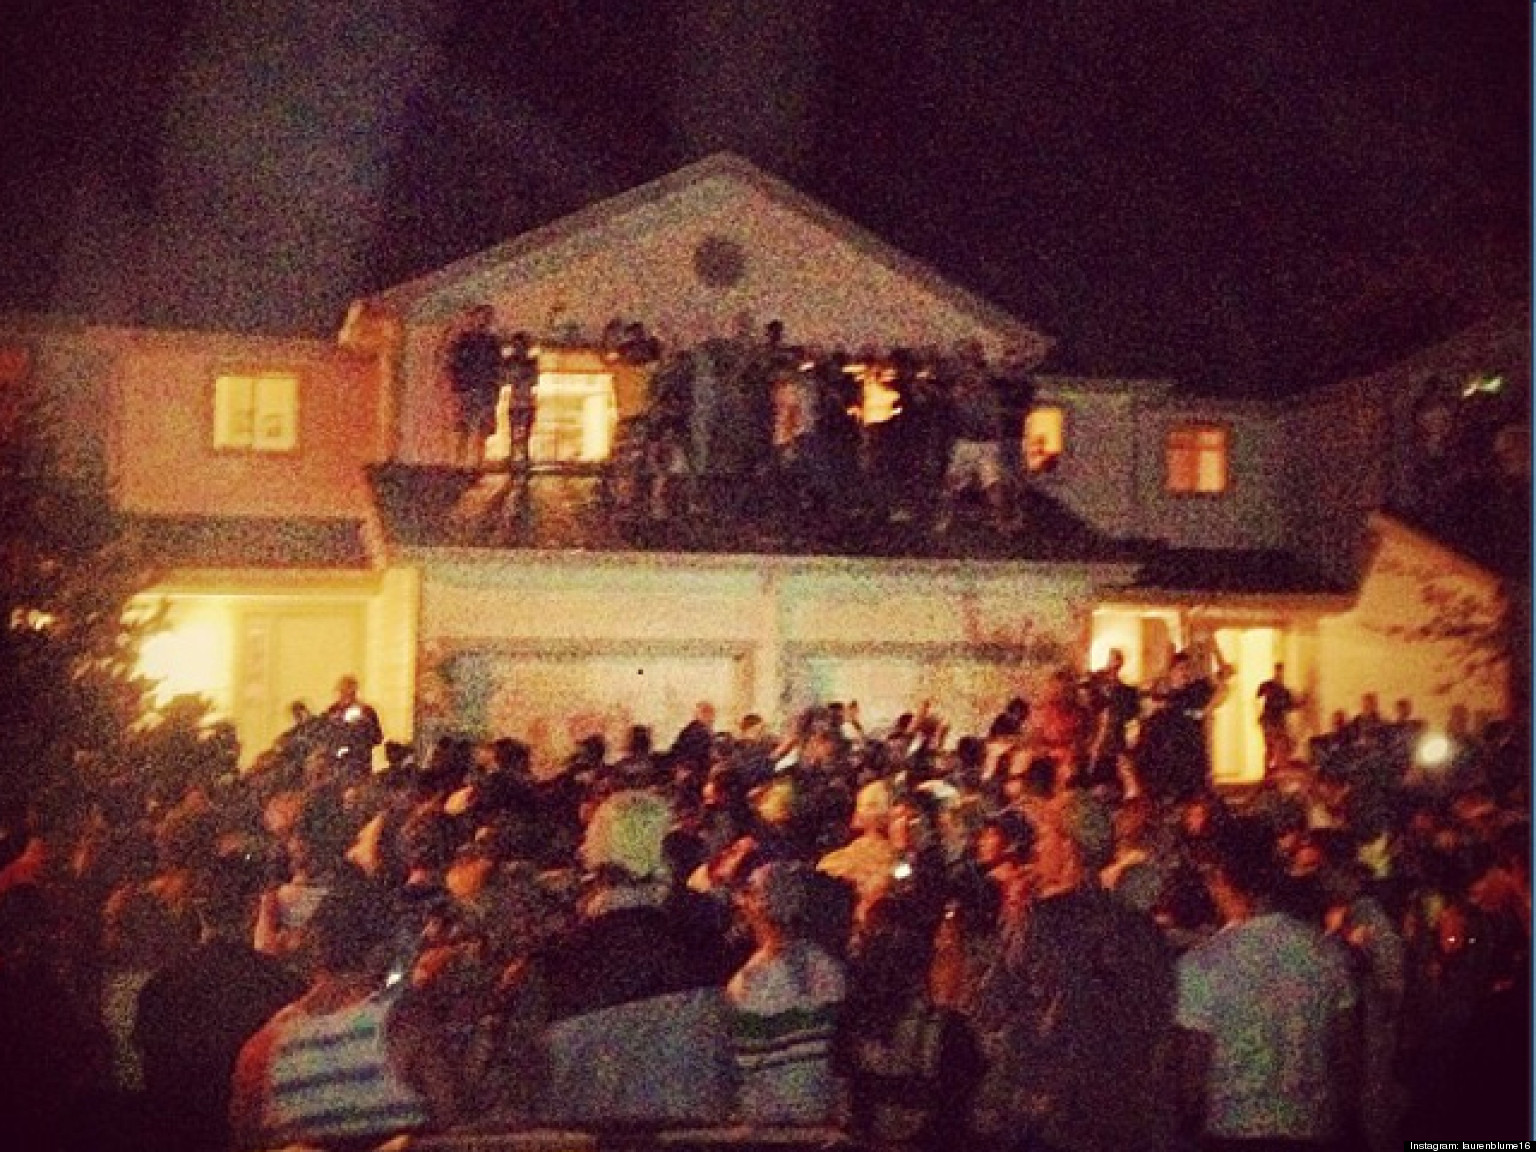 Cops Use Tear Gas To Break Up VIOLENT College Party